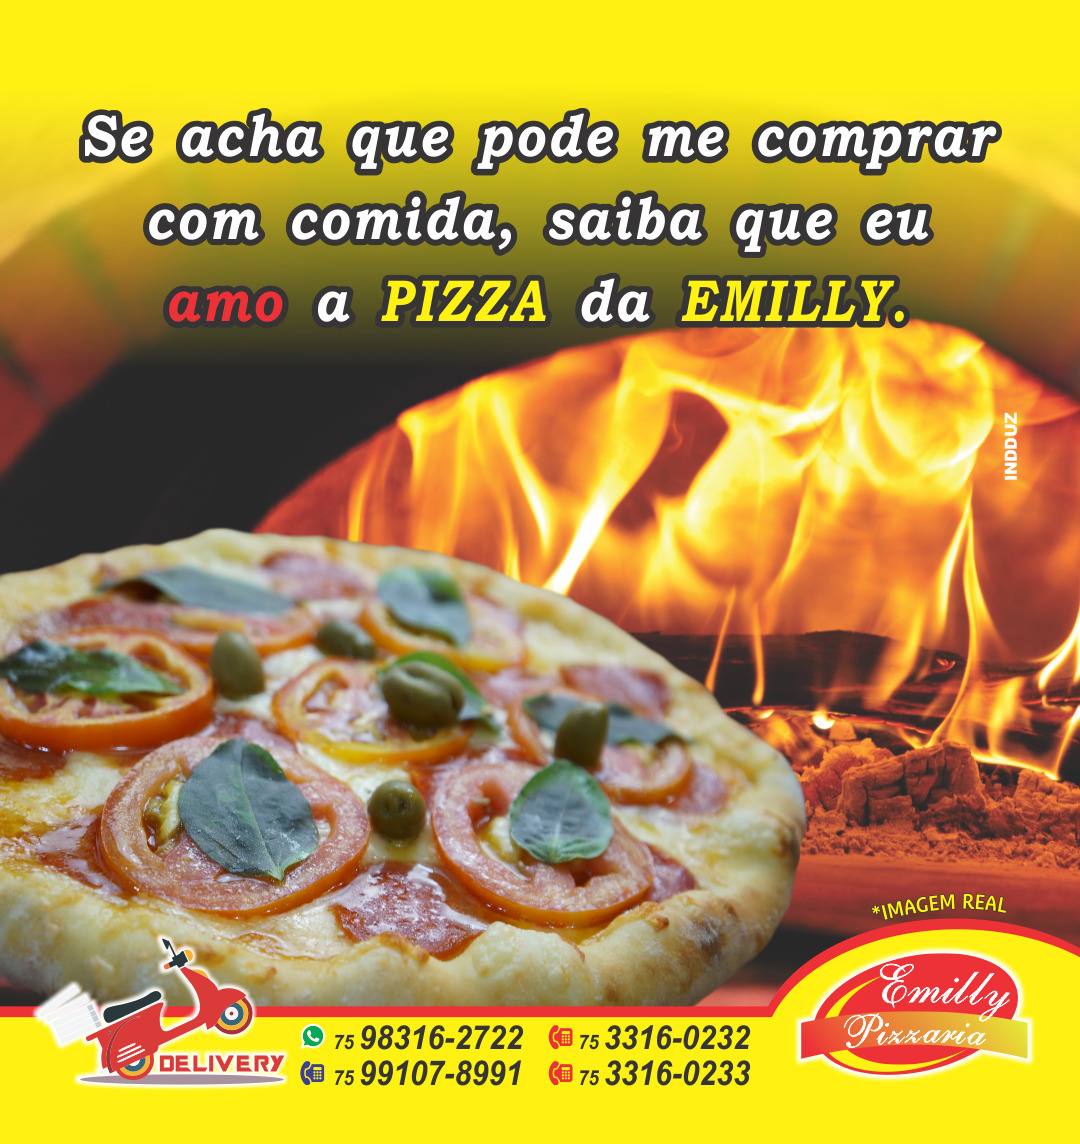 Emilly Pizzaria